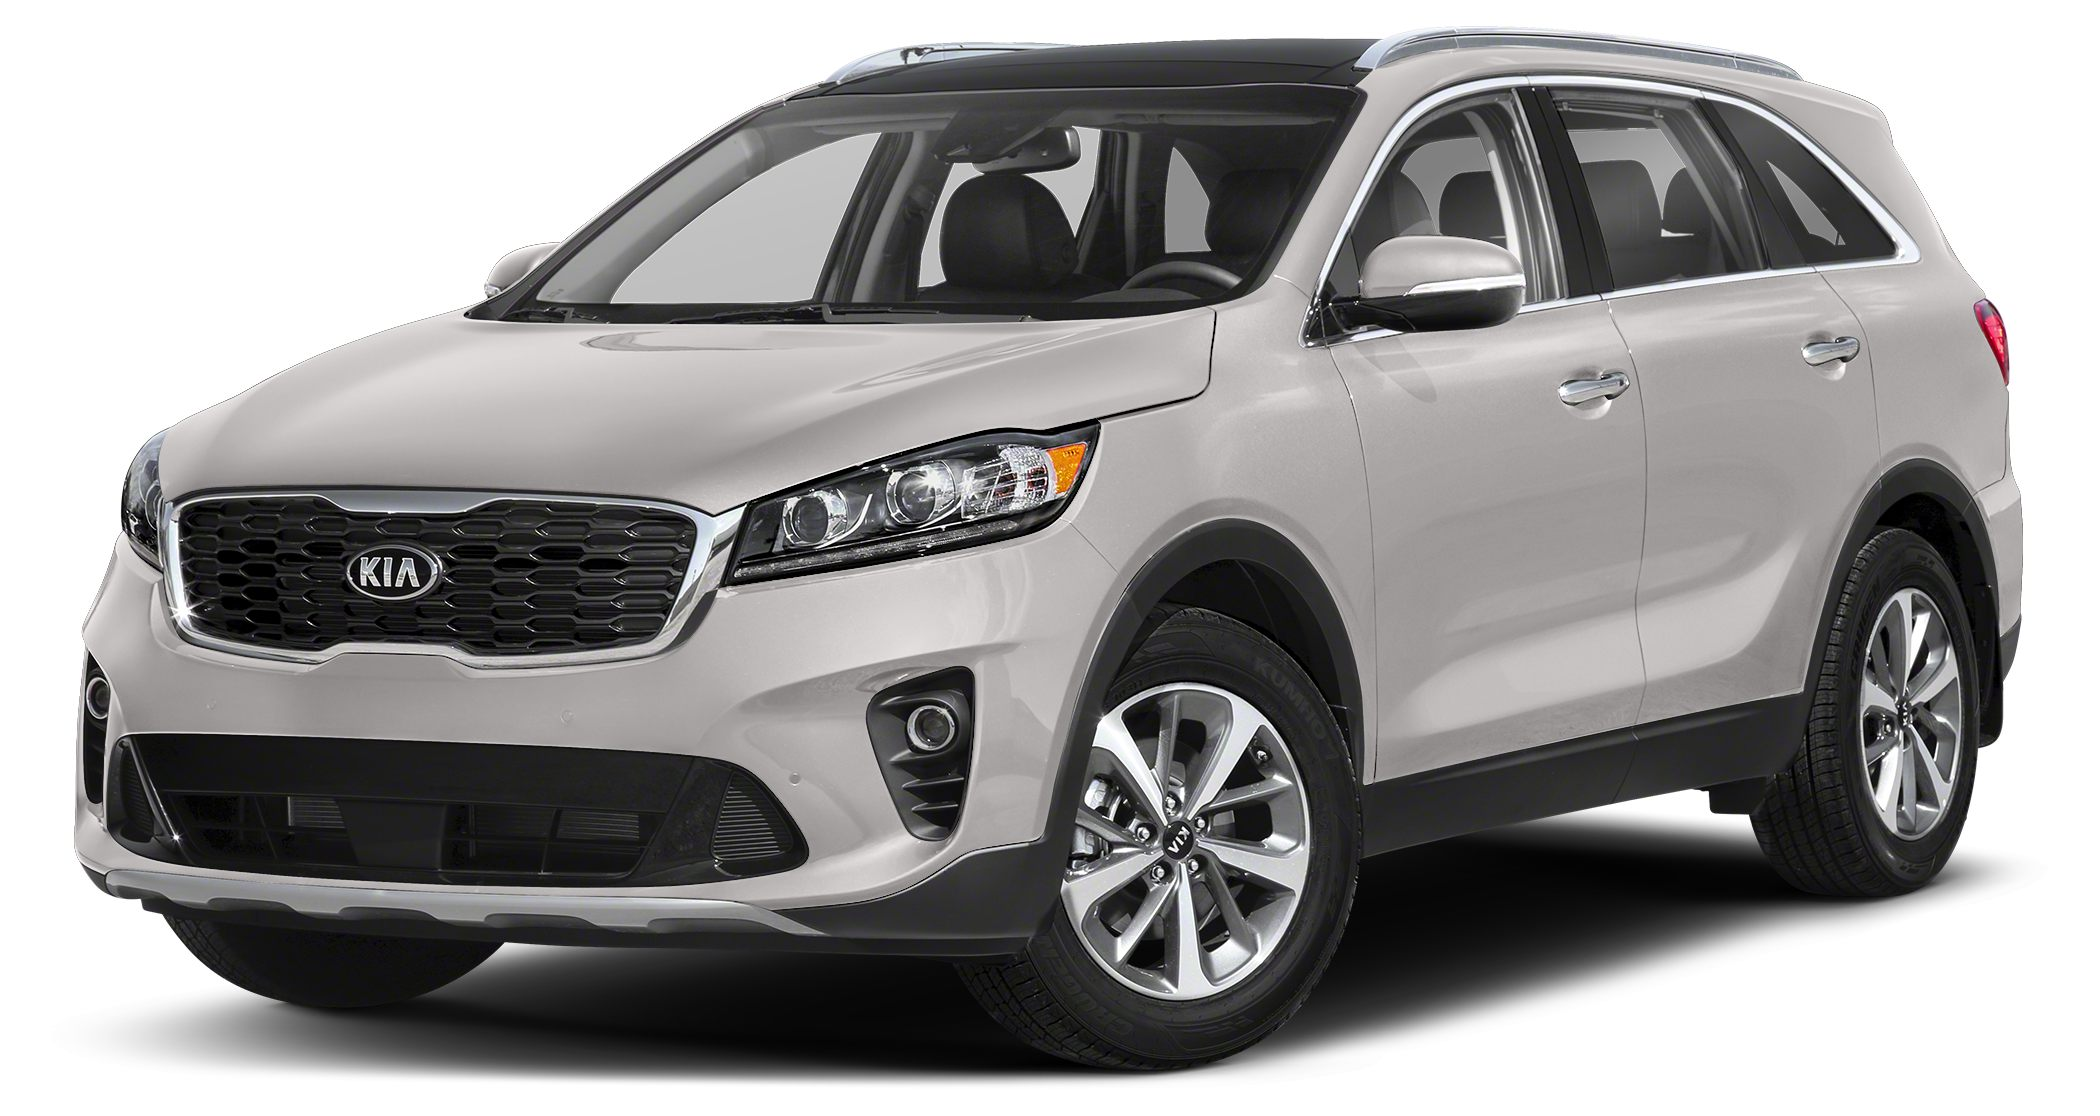 2019 Kia Sorento 24 LX Runs mint Set down the mouse because this big league Sorento is the SUV